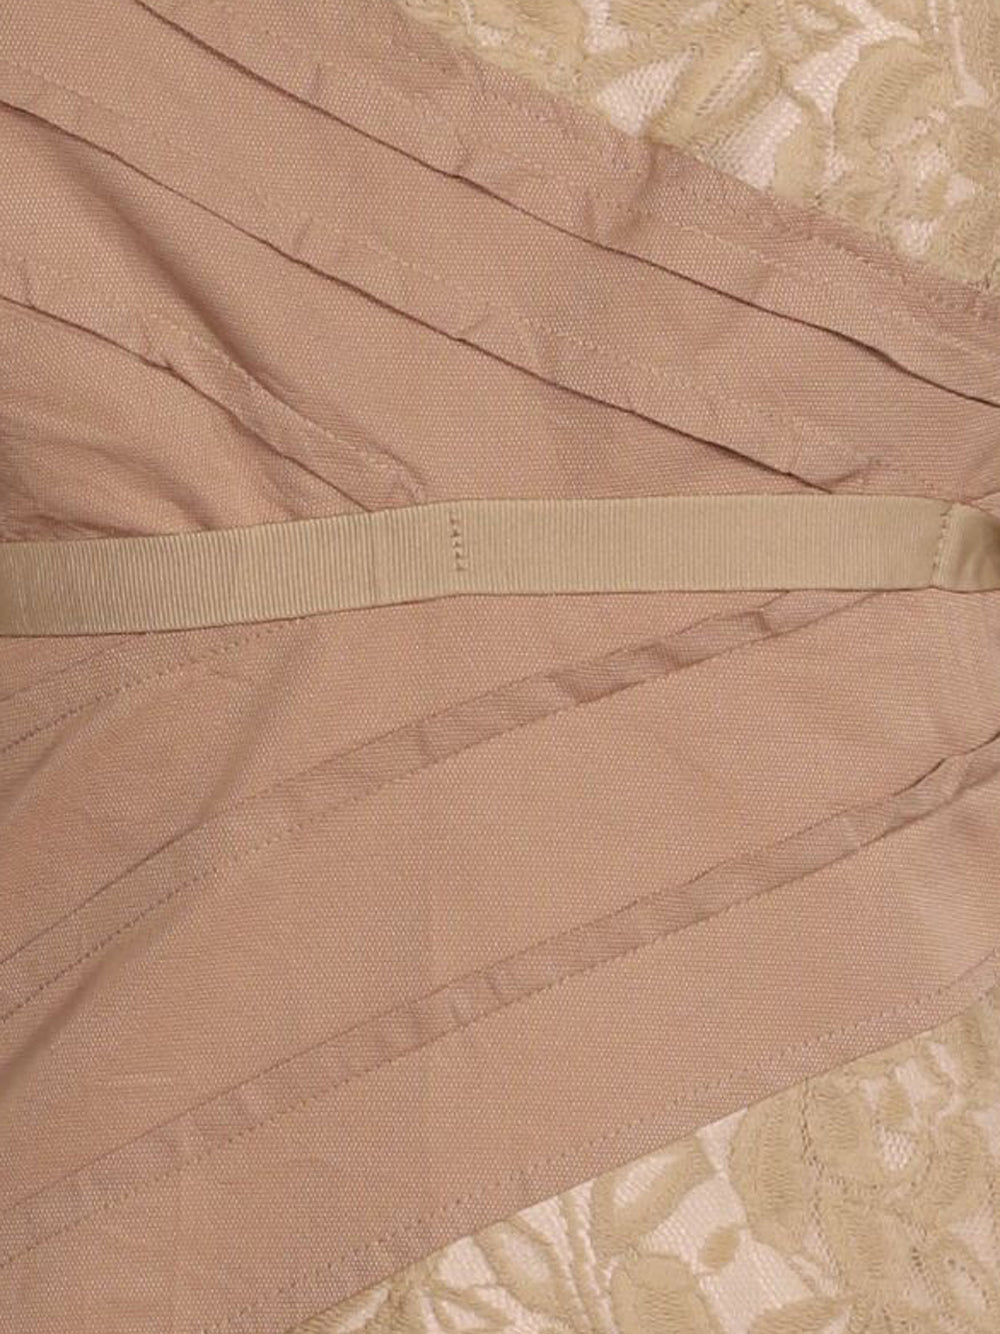 Detail photo of Preloved be tween Beige Woman's sleeveless top - size 12/L